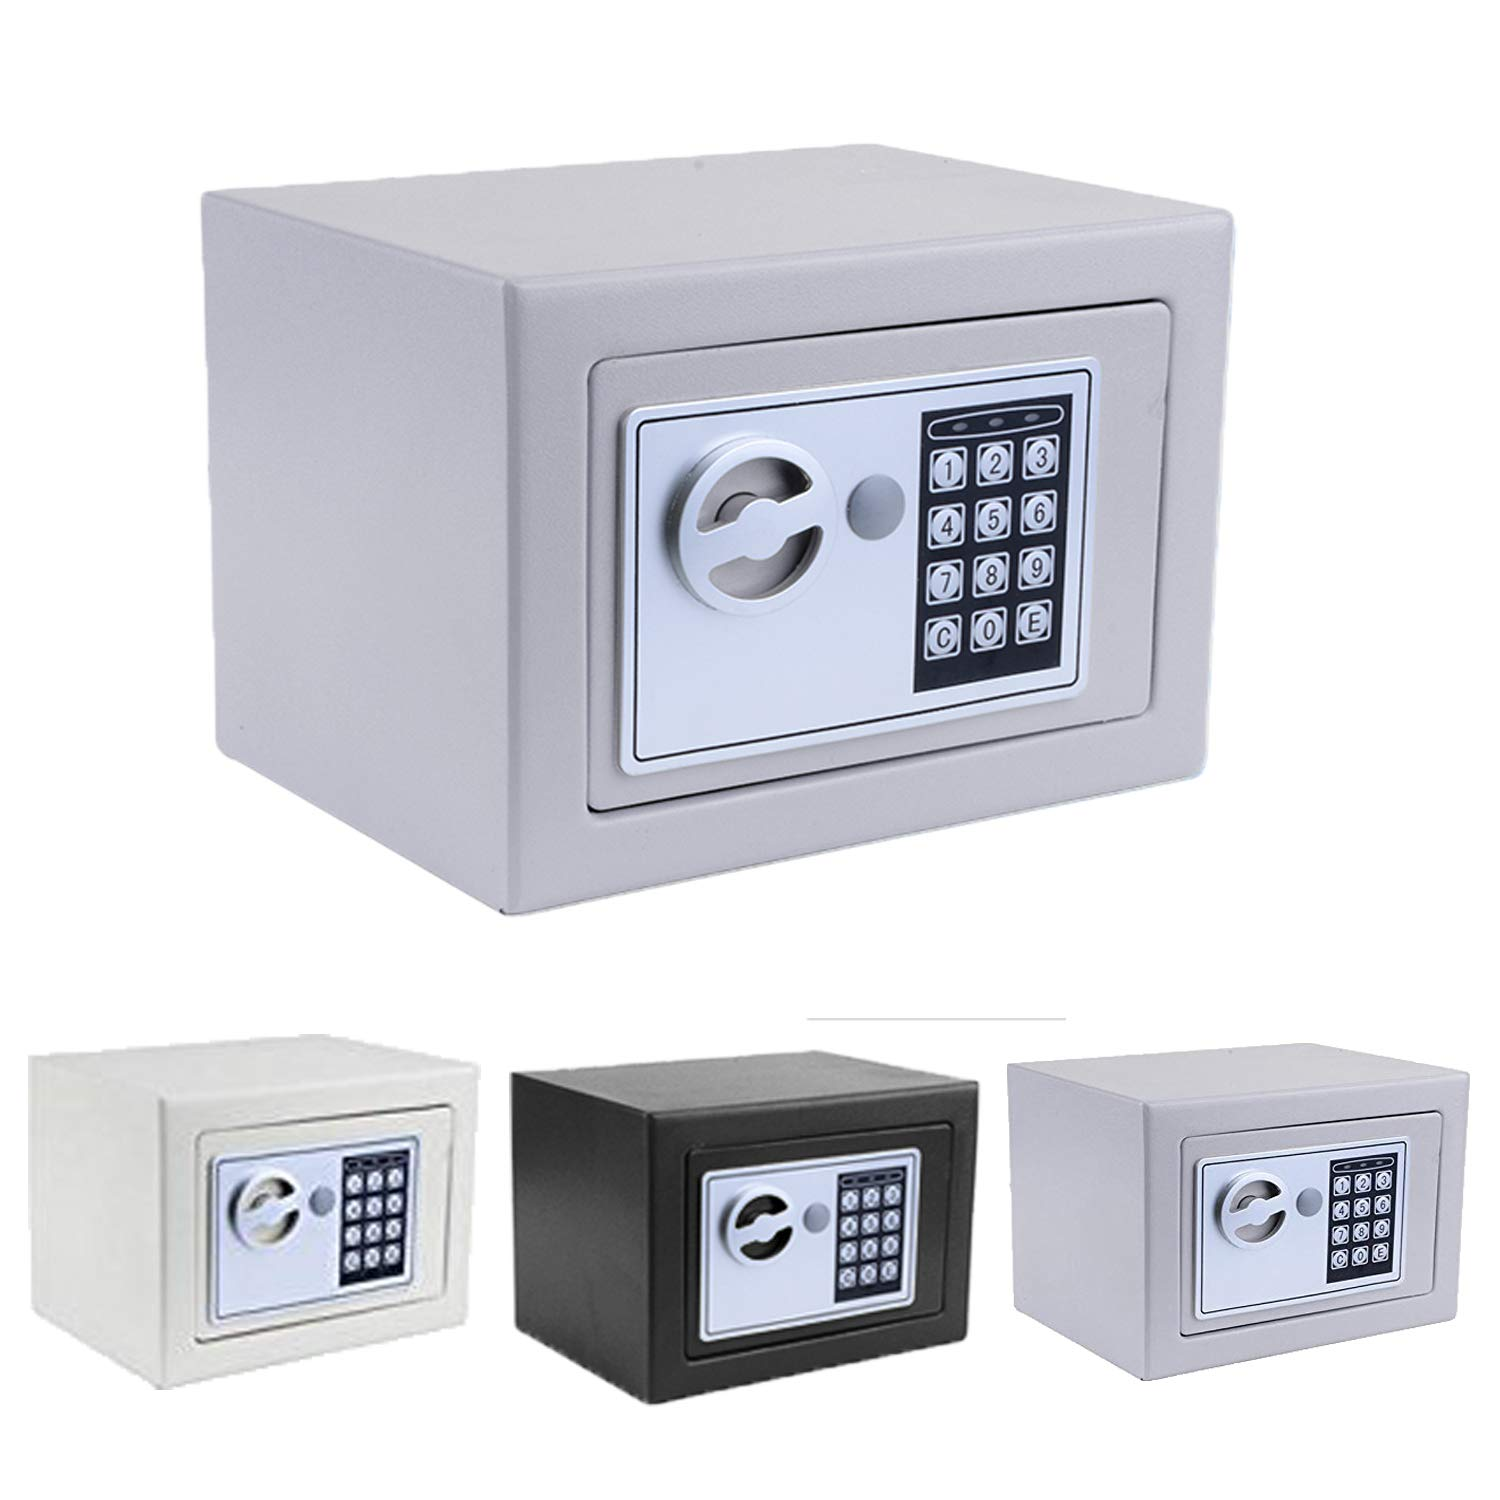 Security Safe, Fireproof Lock Box with Digital Lock Wall Safe for Jewelry Gun Cash Storage (Silver Grey)